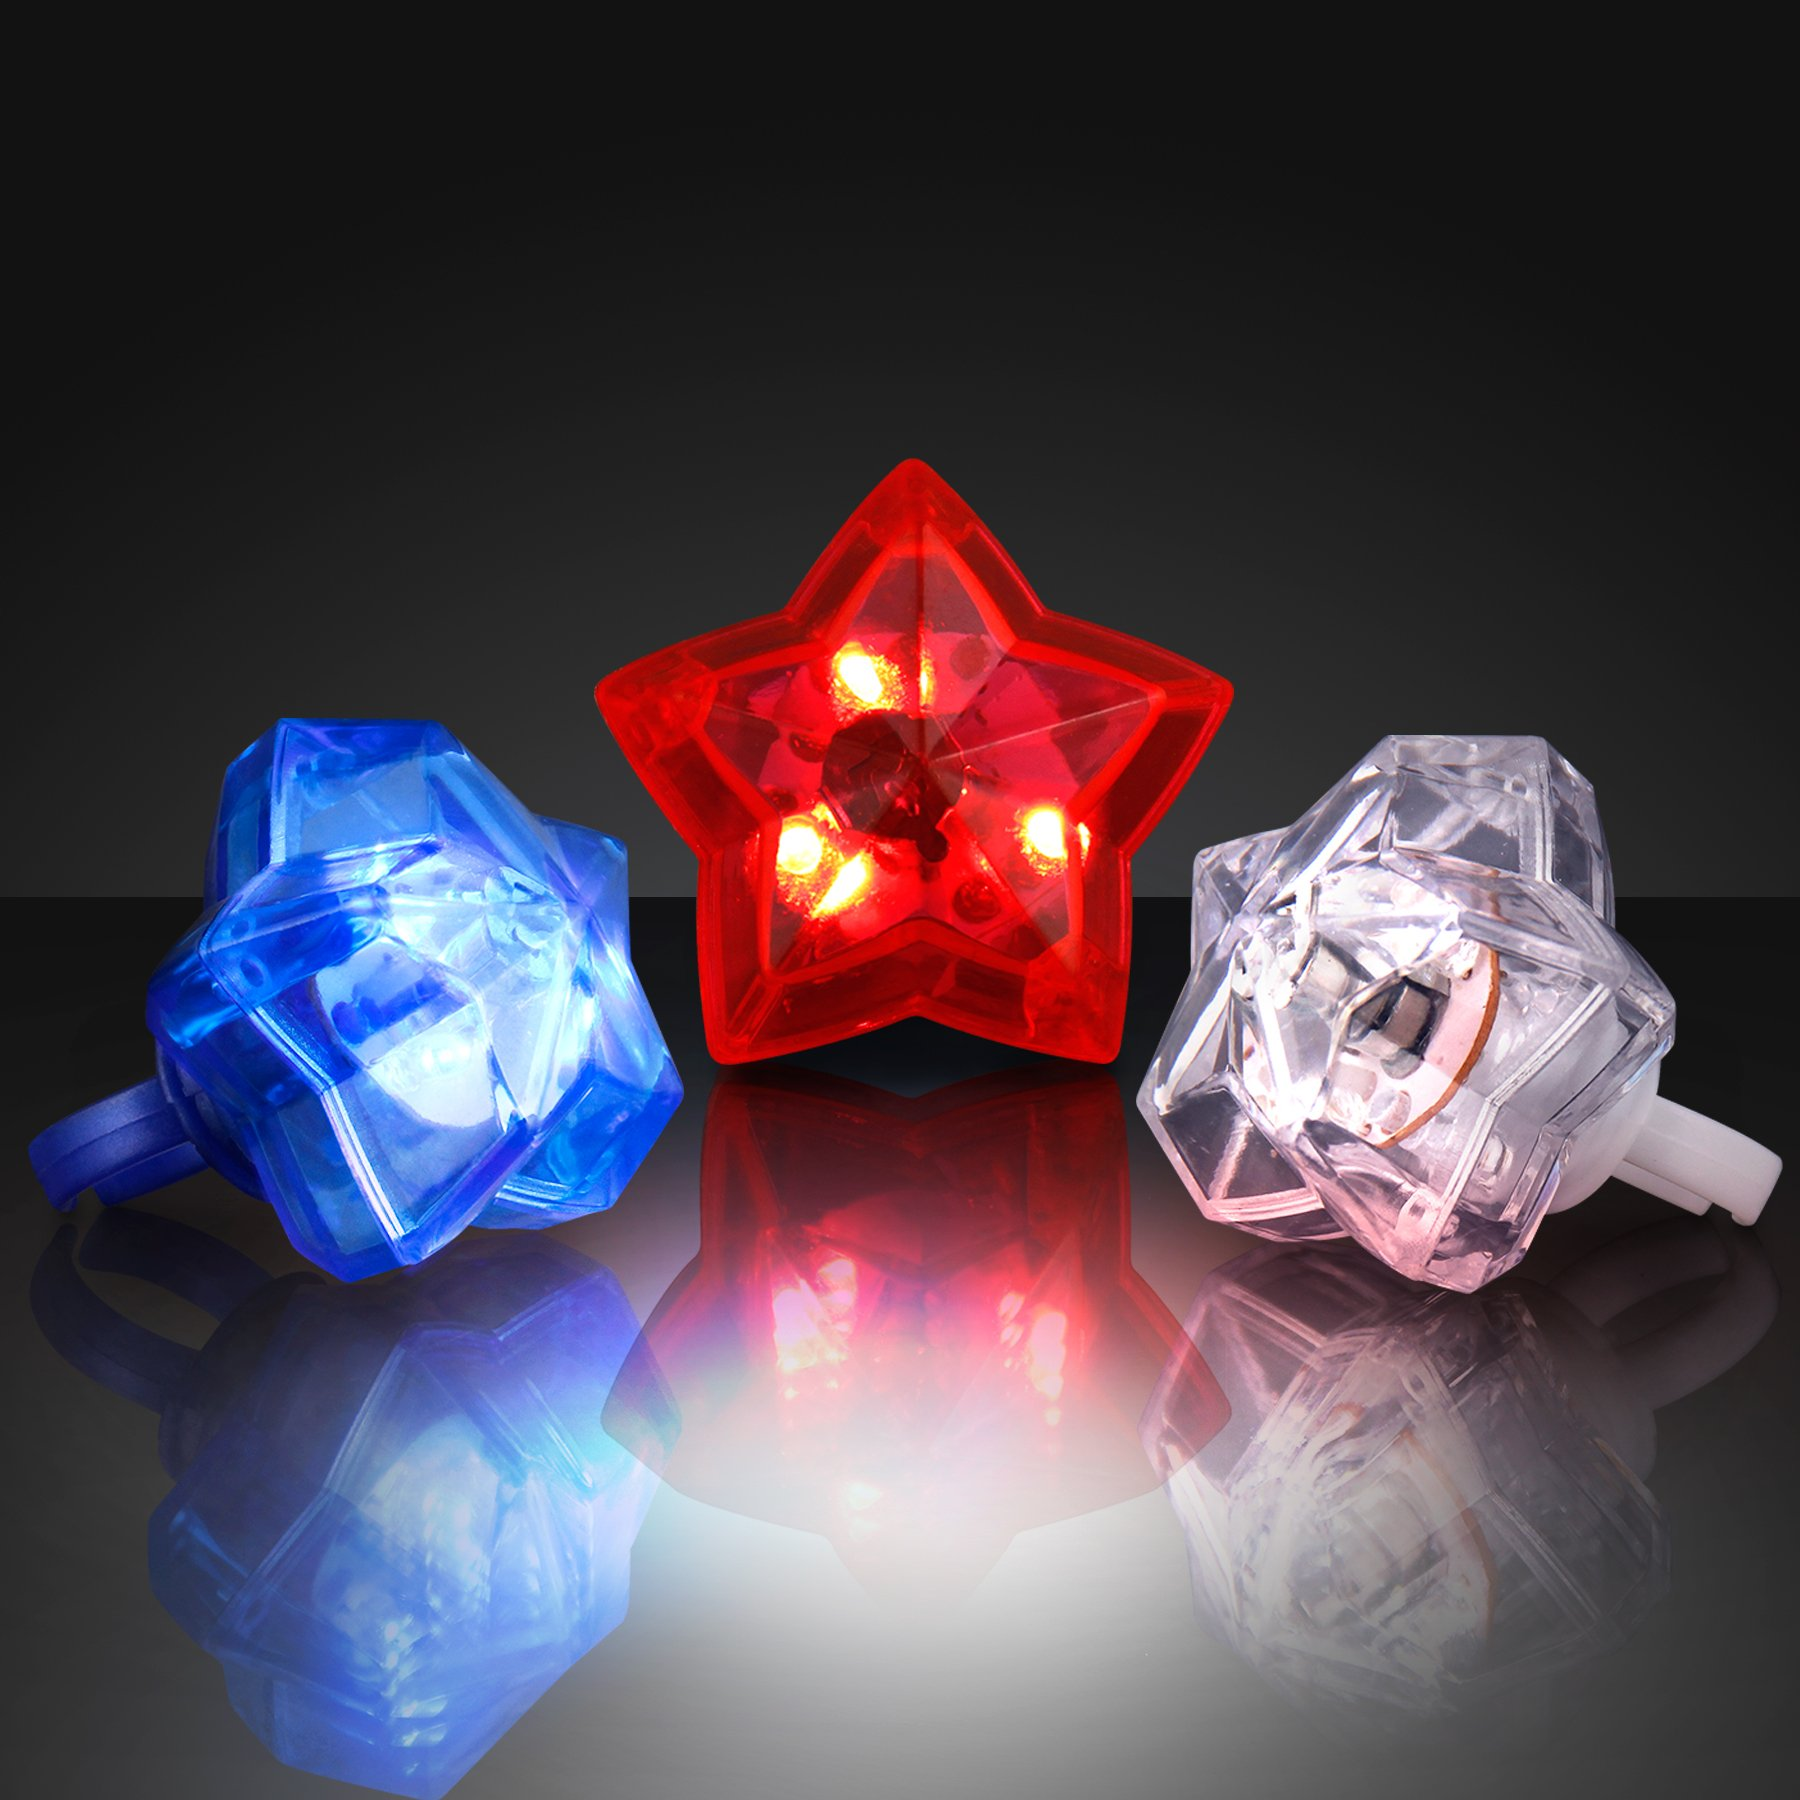 FlashingBlinkyLights Star Shaped Light Up Rings in Red, White & Blue (Set of 24)